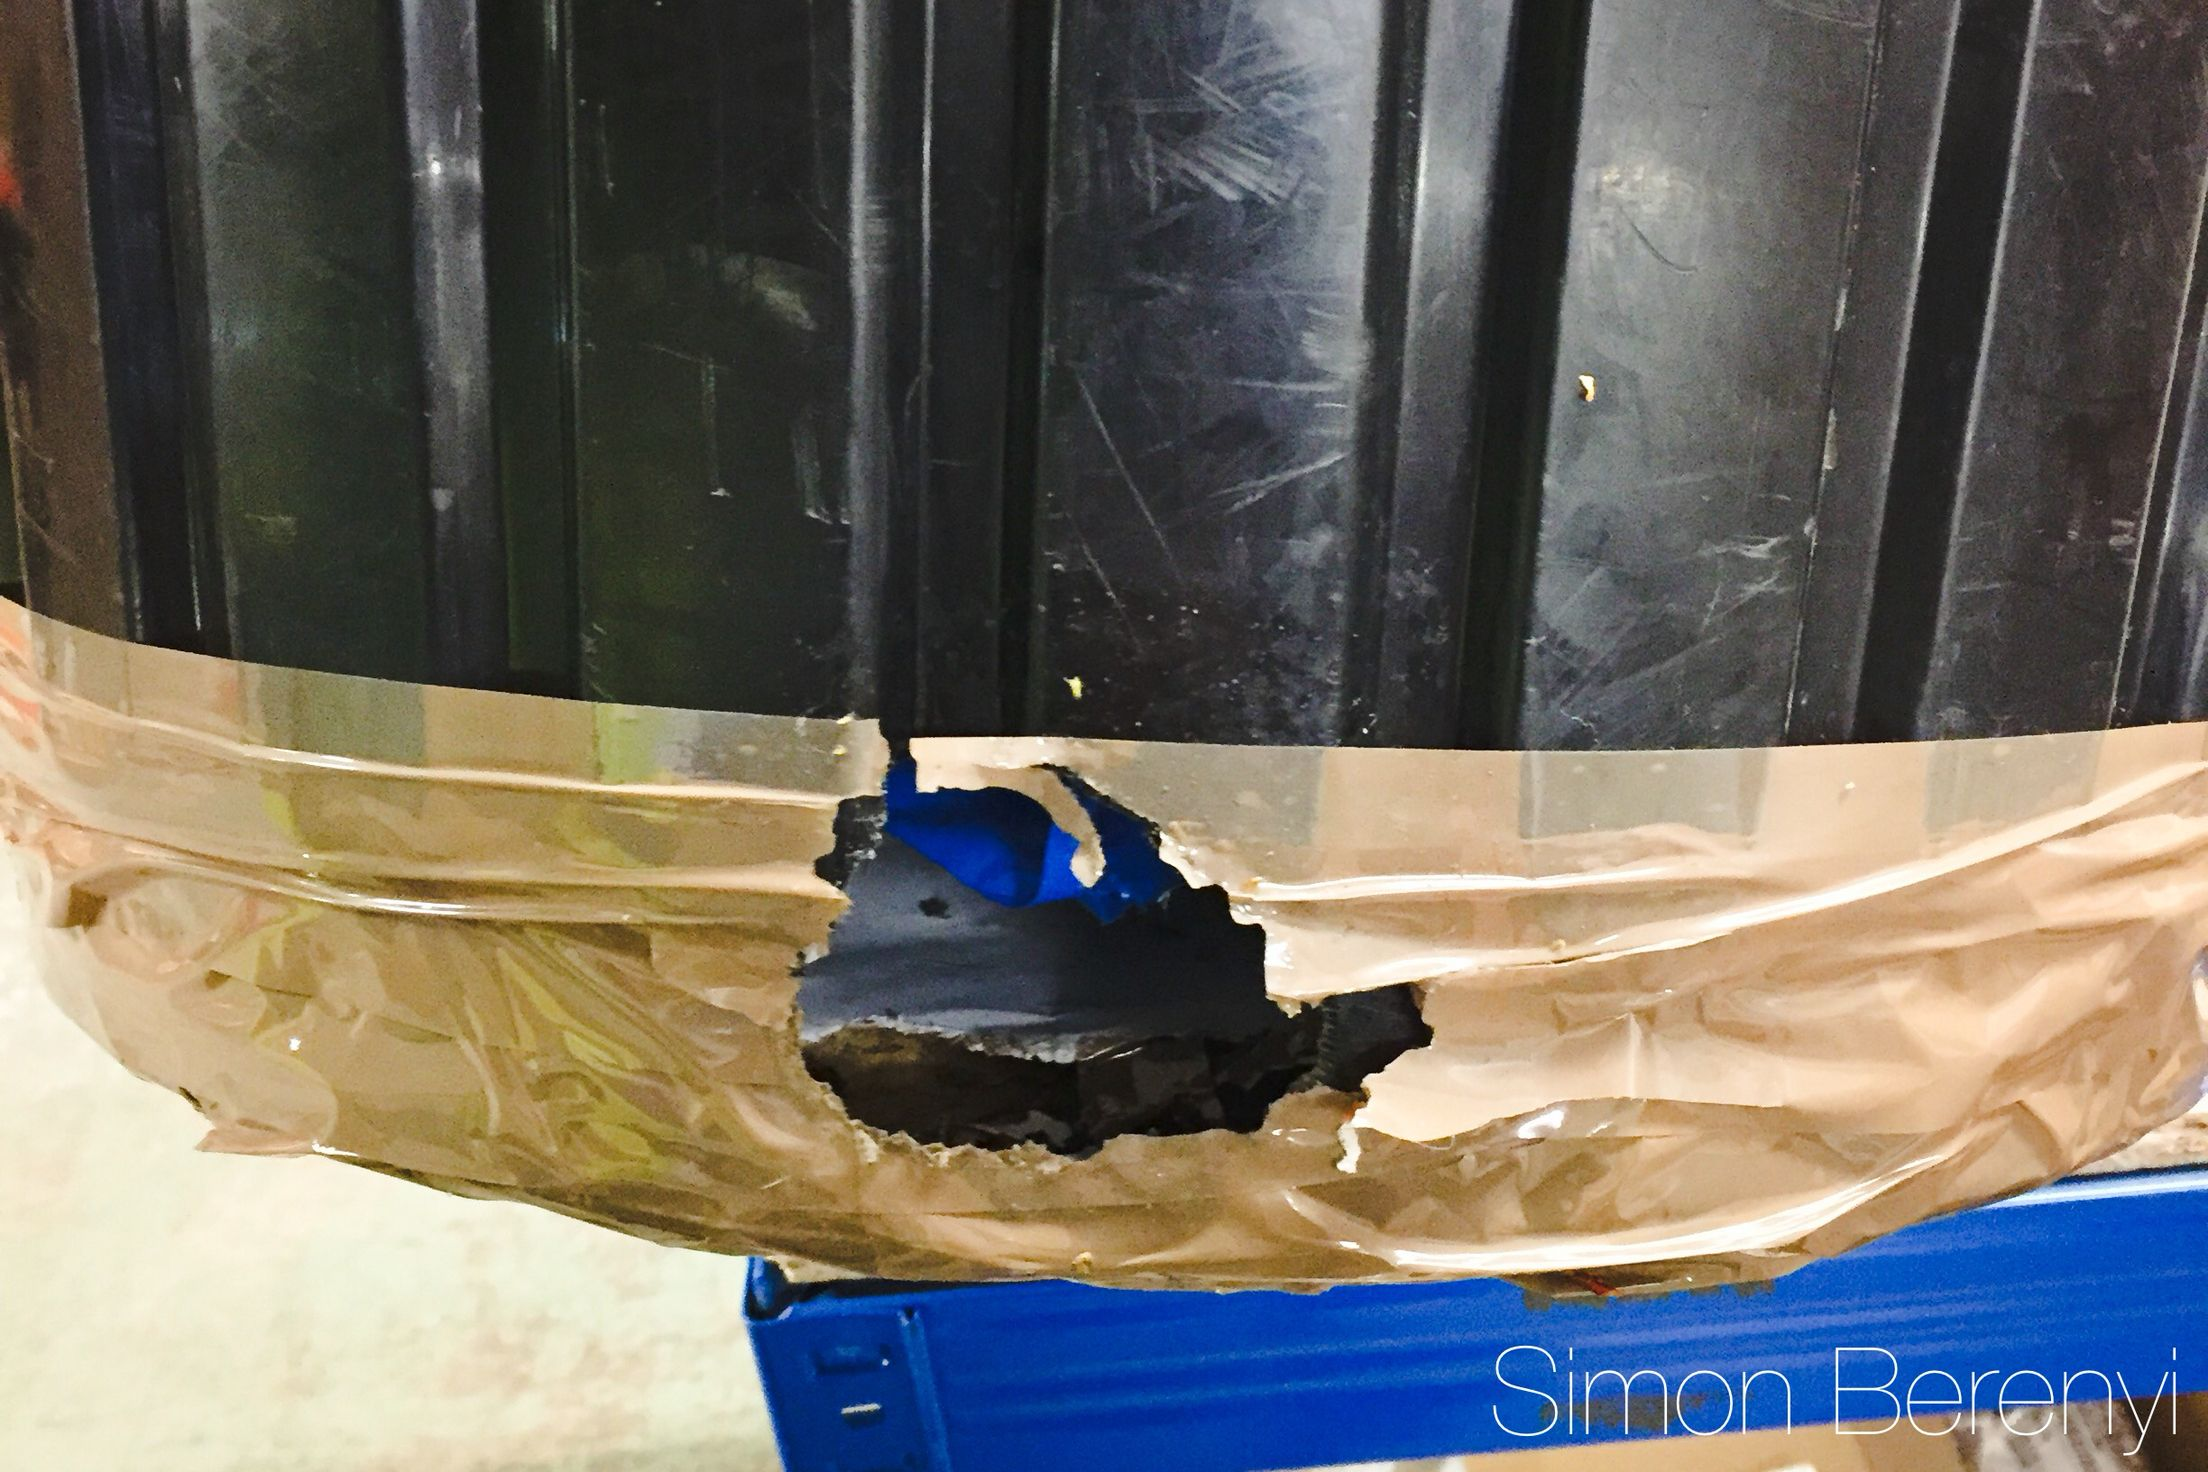 When rats get stuck in a bin, they will find or make a way